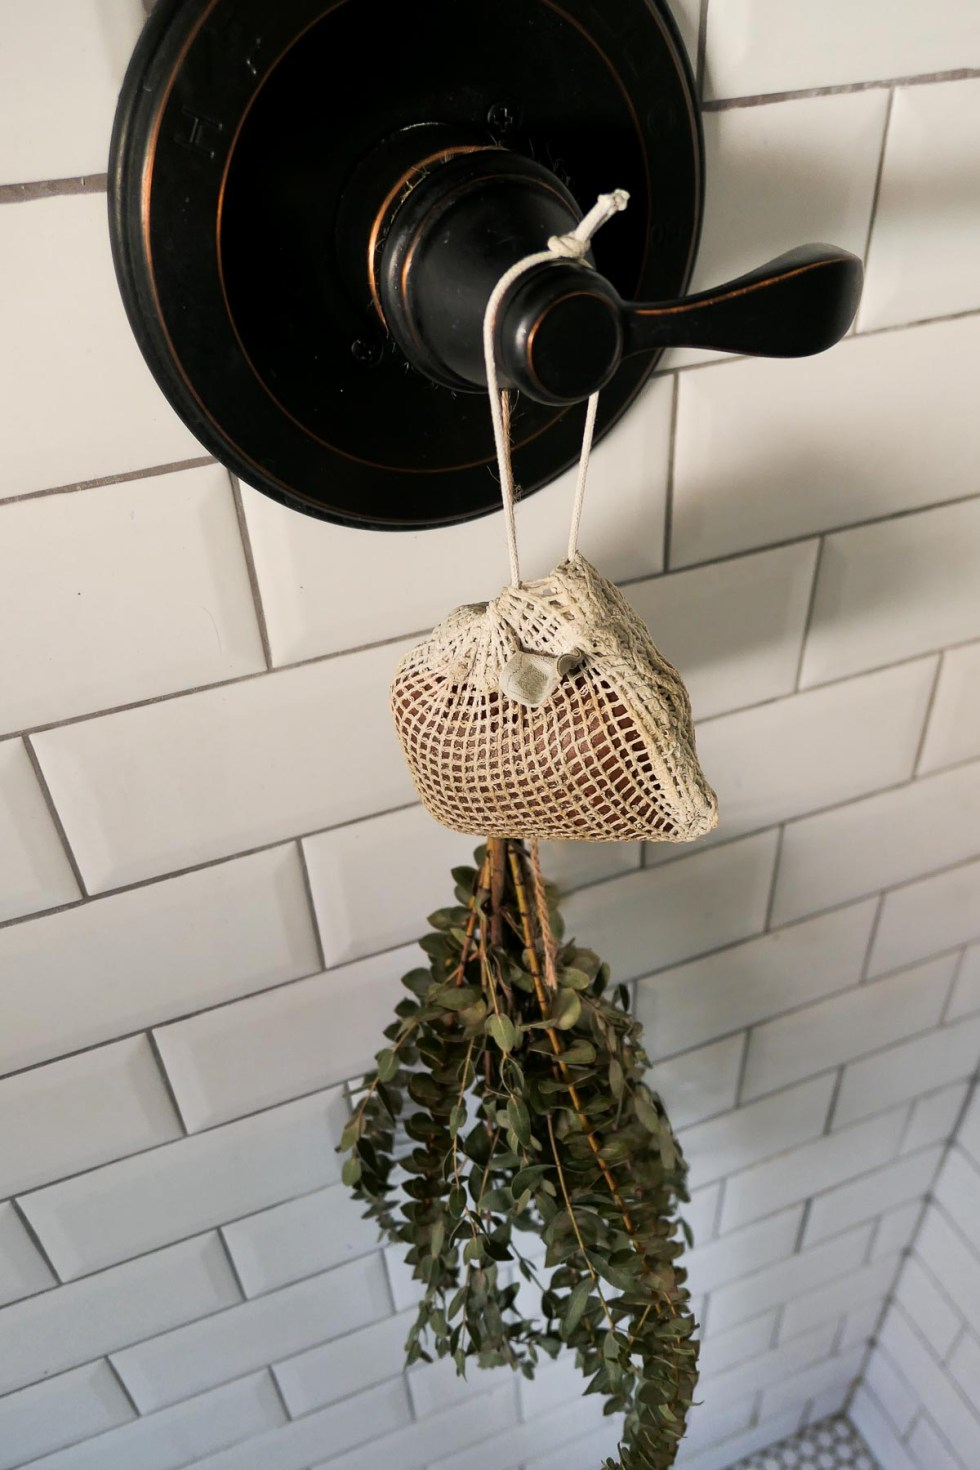 Beauty Body Tools - Sisal Soap Bag Hanging From Shower Knob with Eucalyptus Shower Bundle